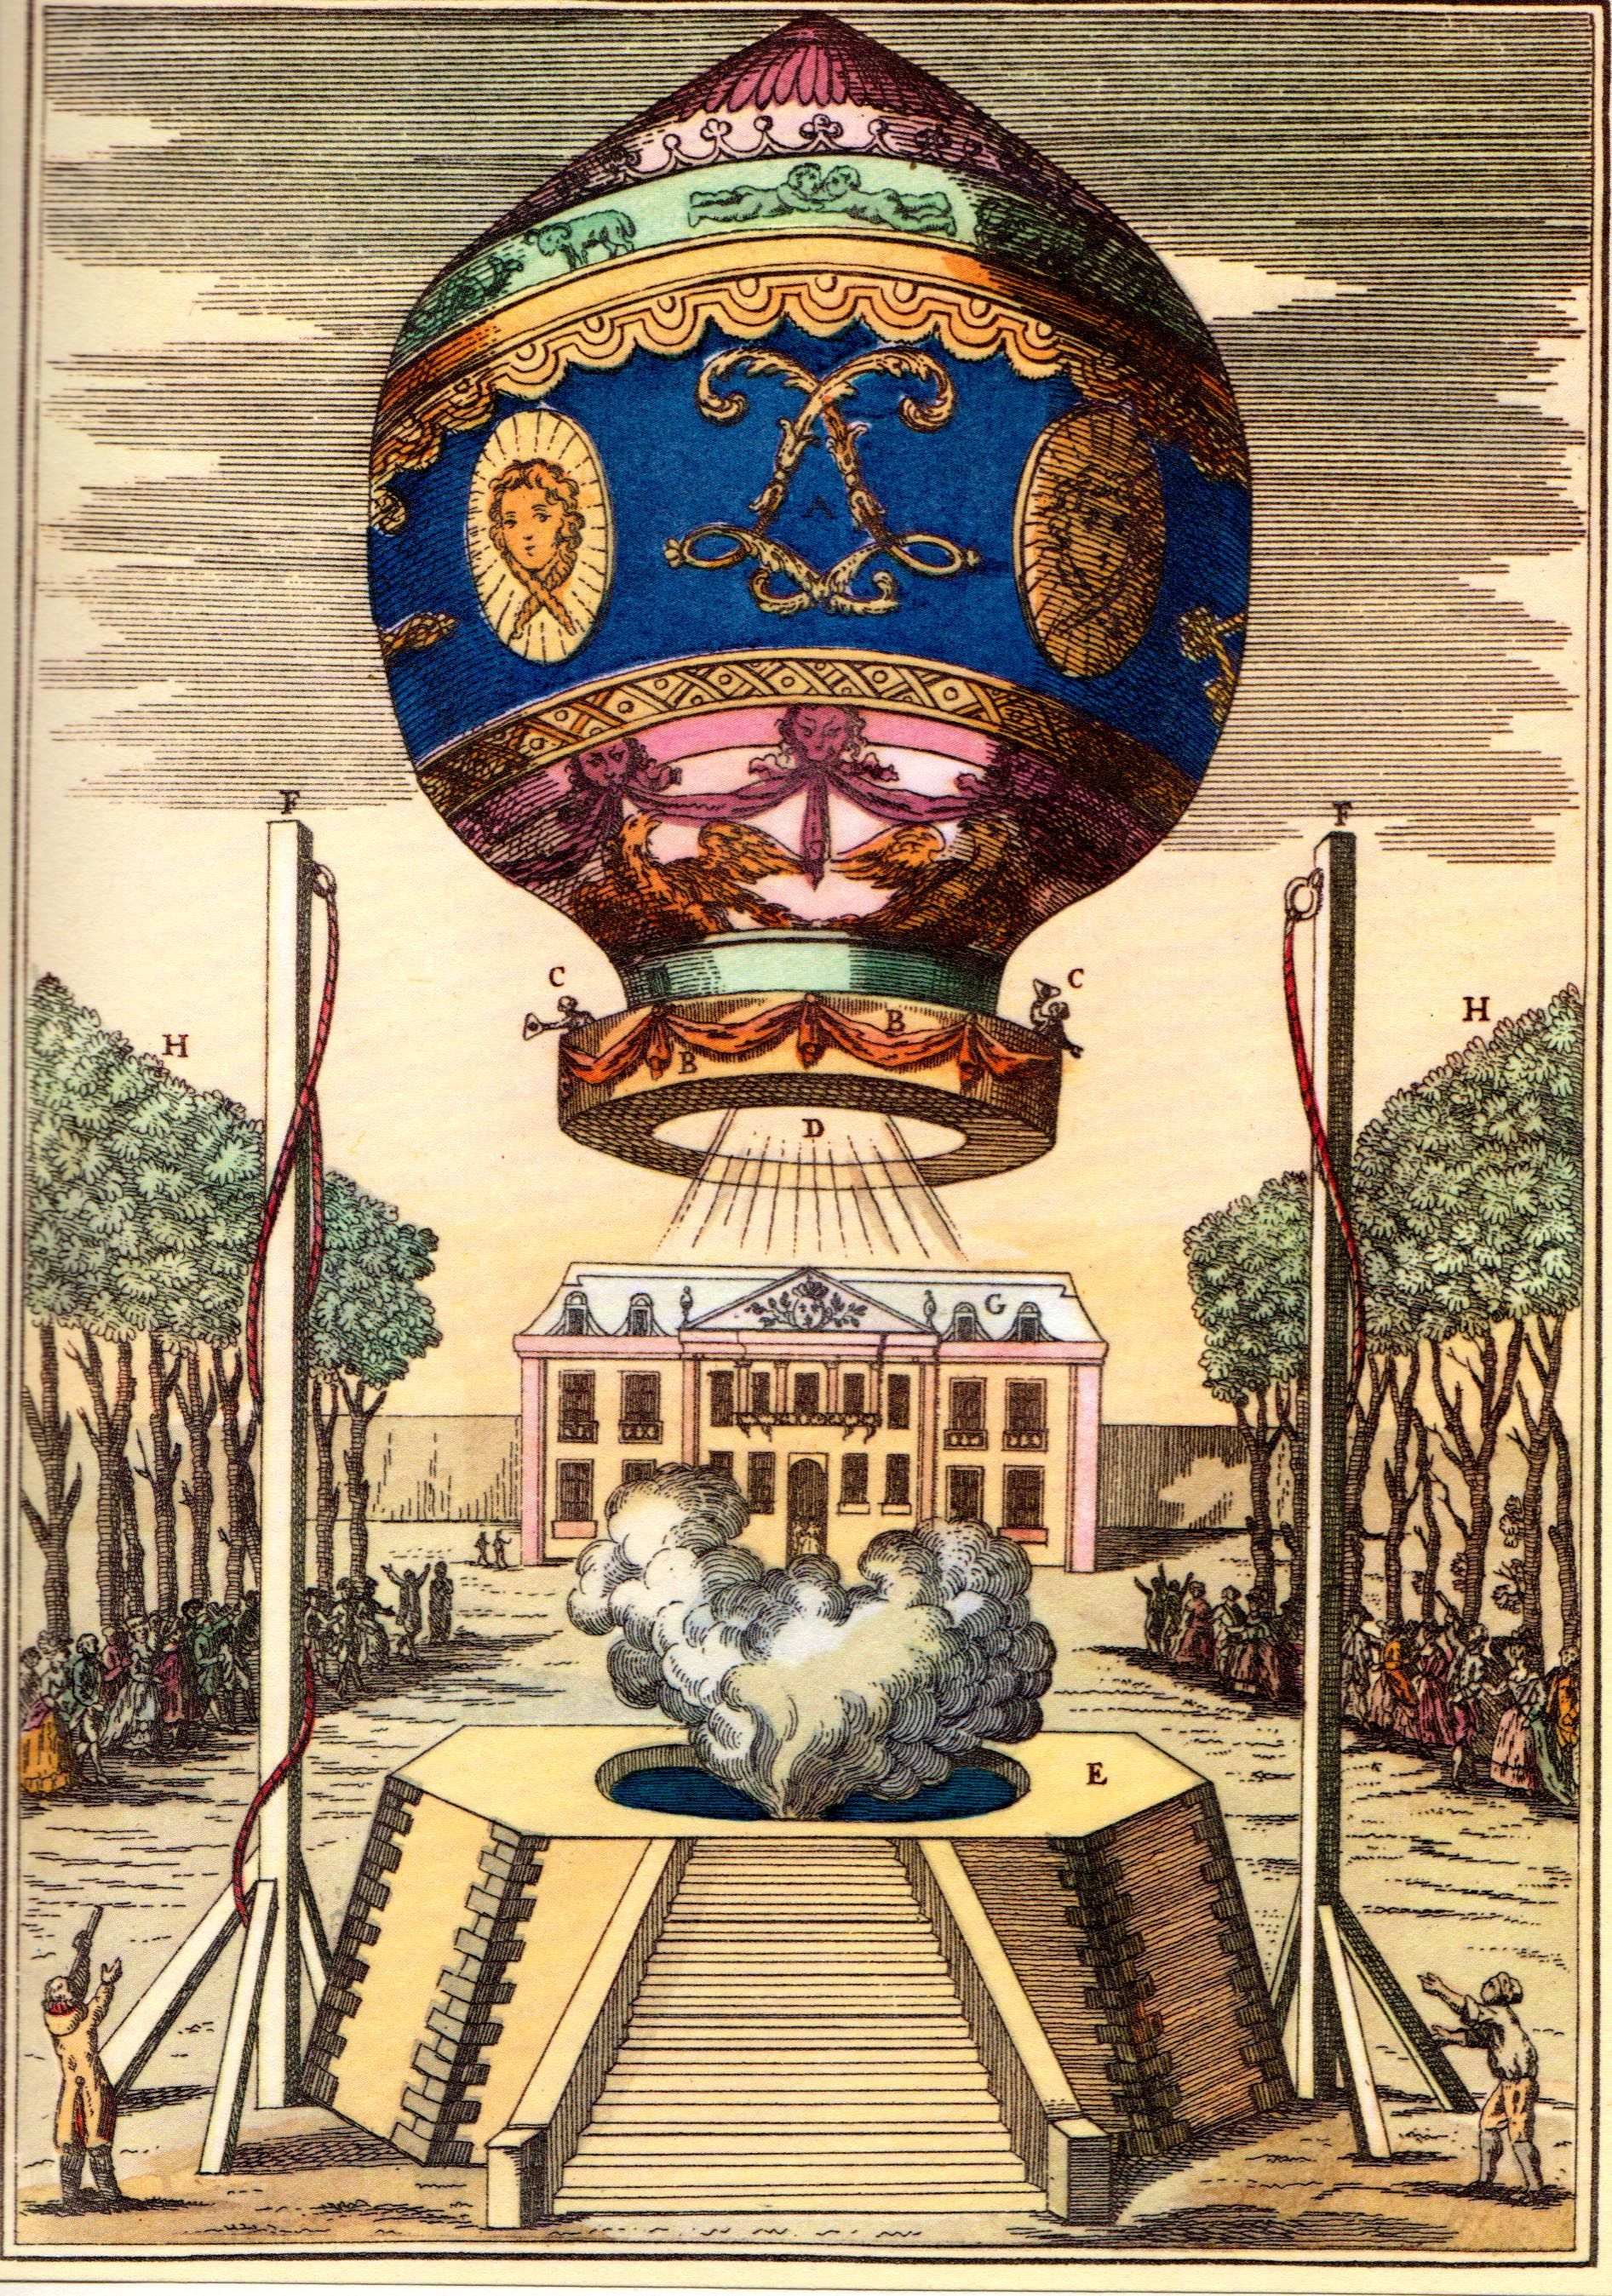 Montgolfier launch in 1783